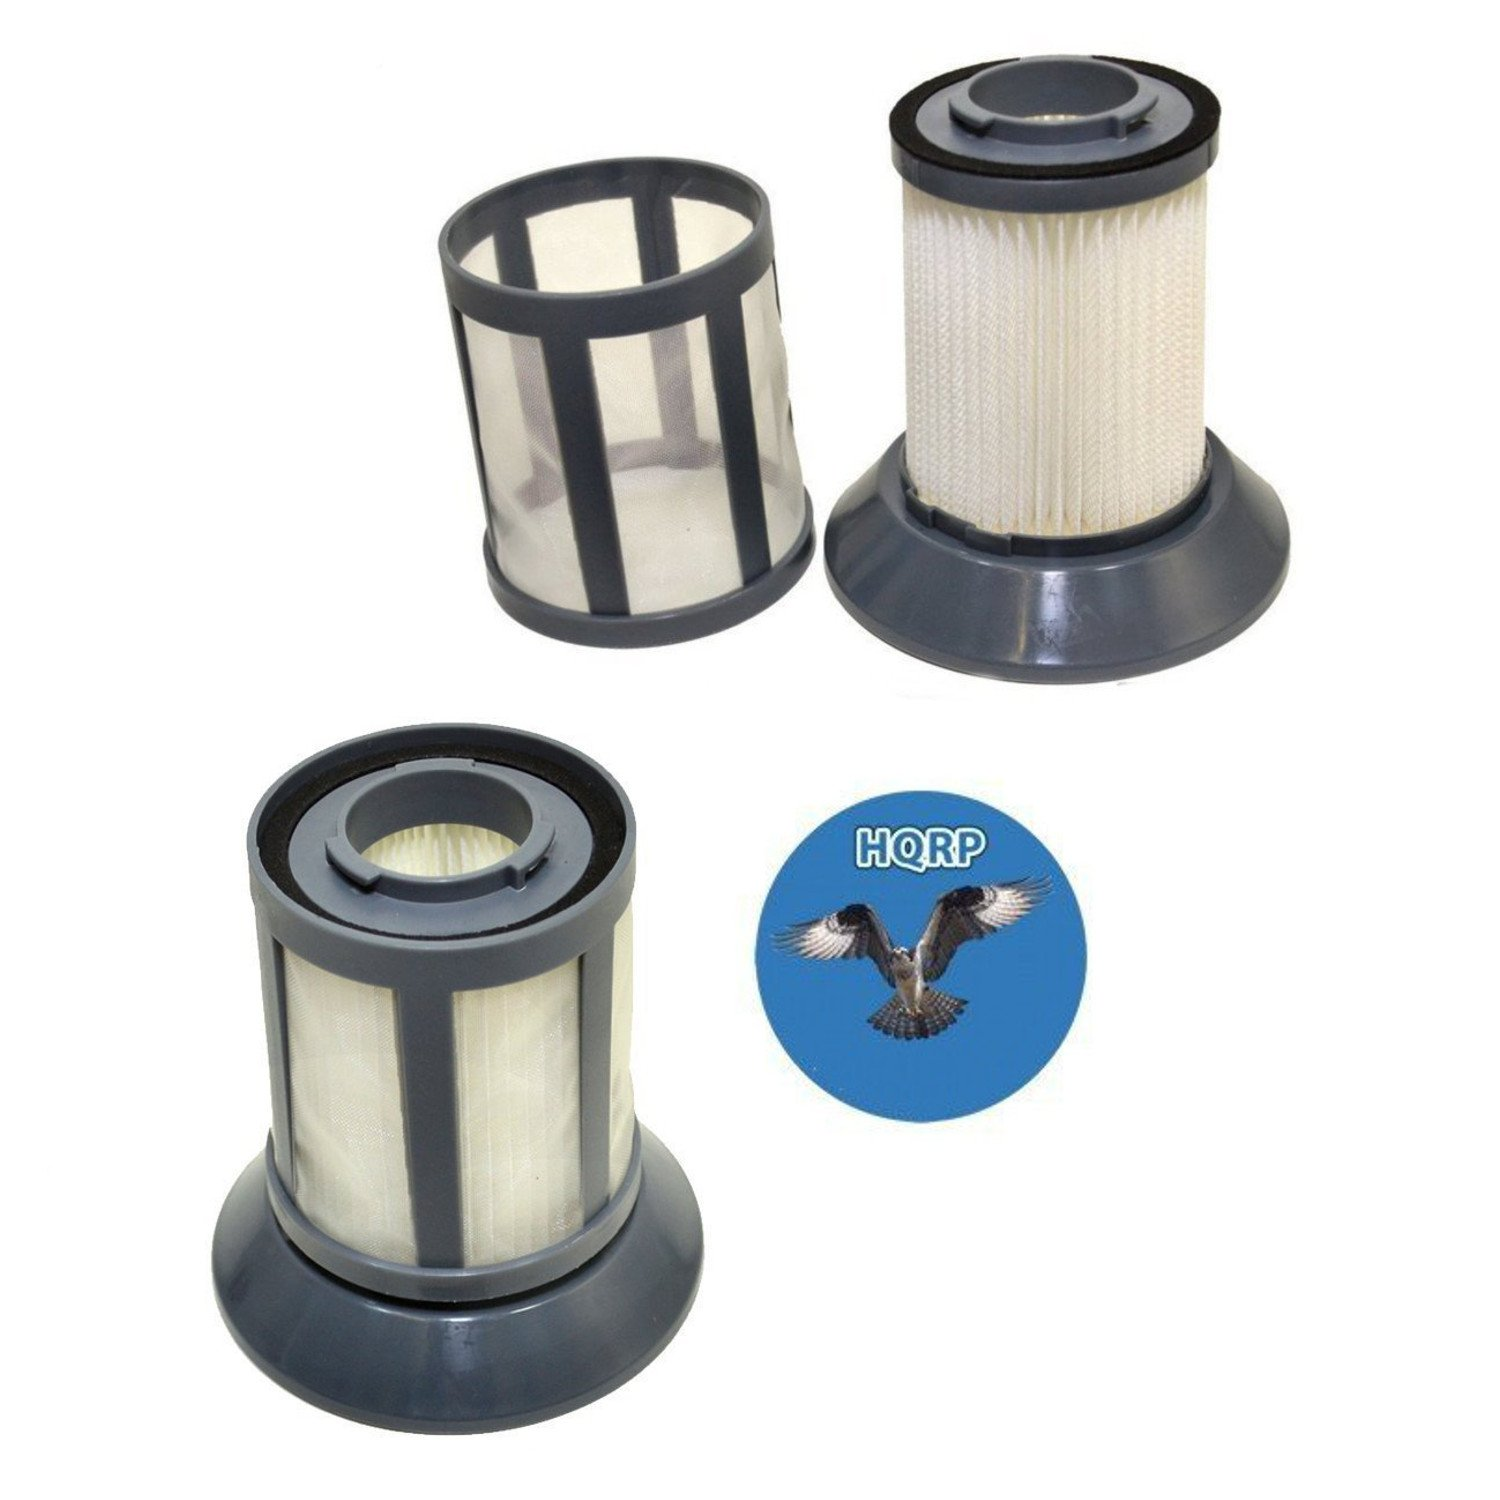 HQRP 2-pack Pre Motor Dirt Tank Filter for Bissell 1665W Powerforce Bagless Canister Vacuum Cleaner, 1608602 Replacement plus HQRP Coaster 884667807251704